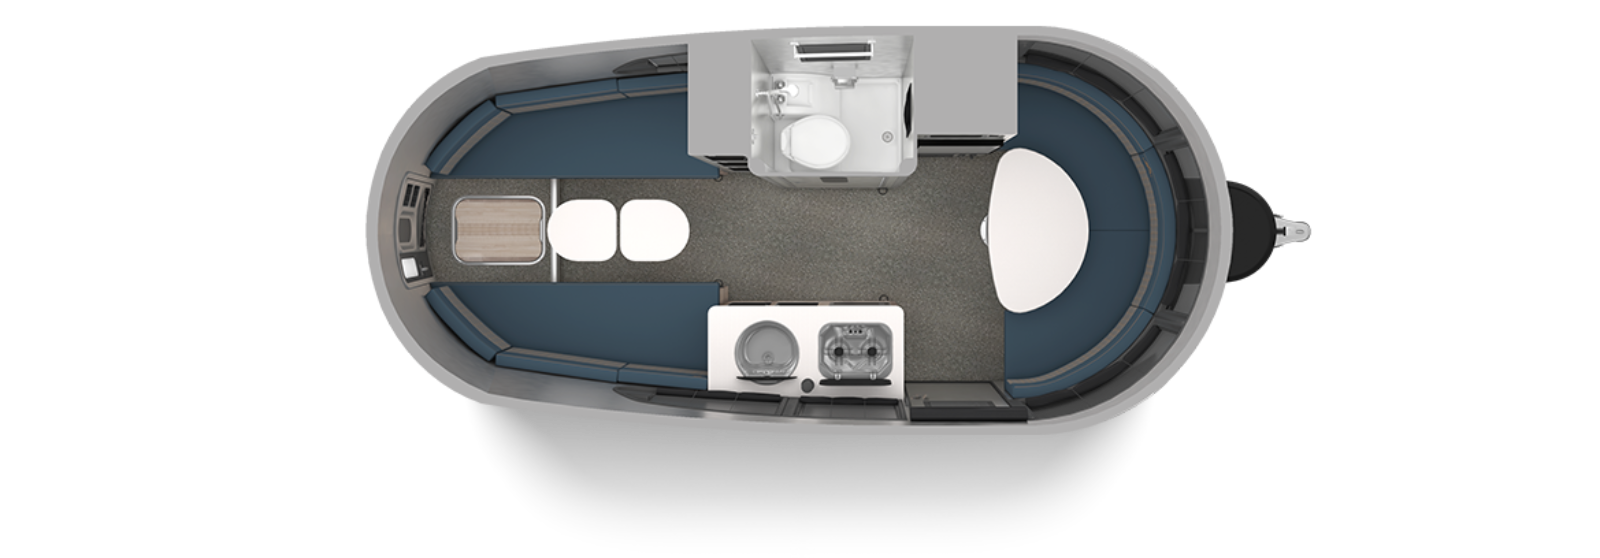 Airstream-Basecamp-20-Glacier-Lake-Floor-Plan-v2